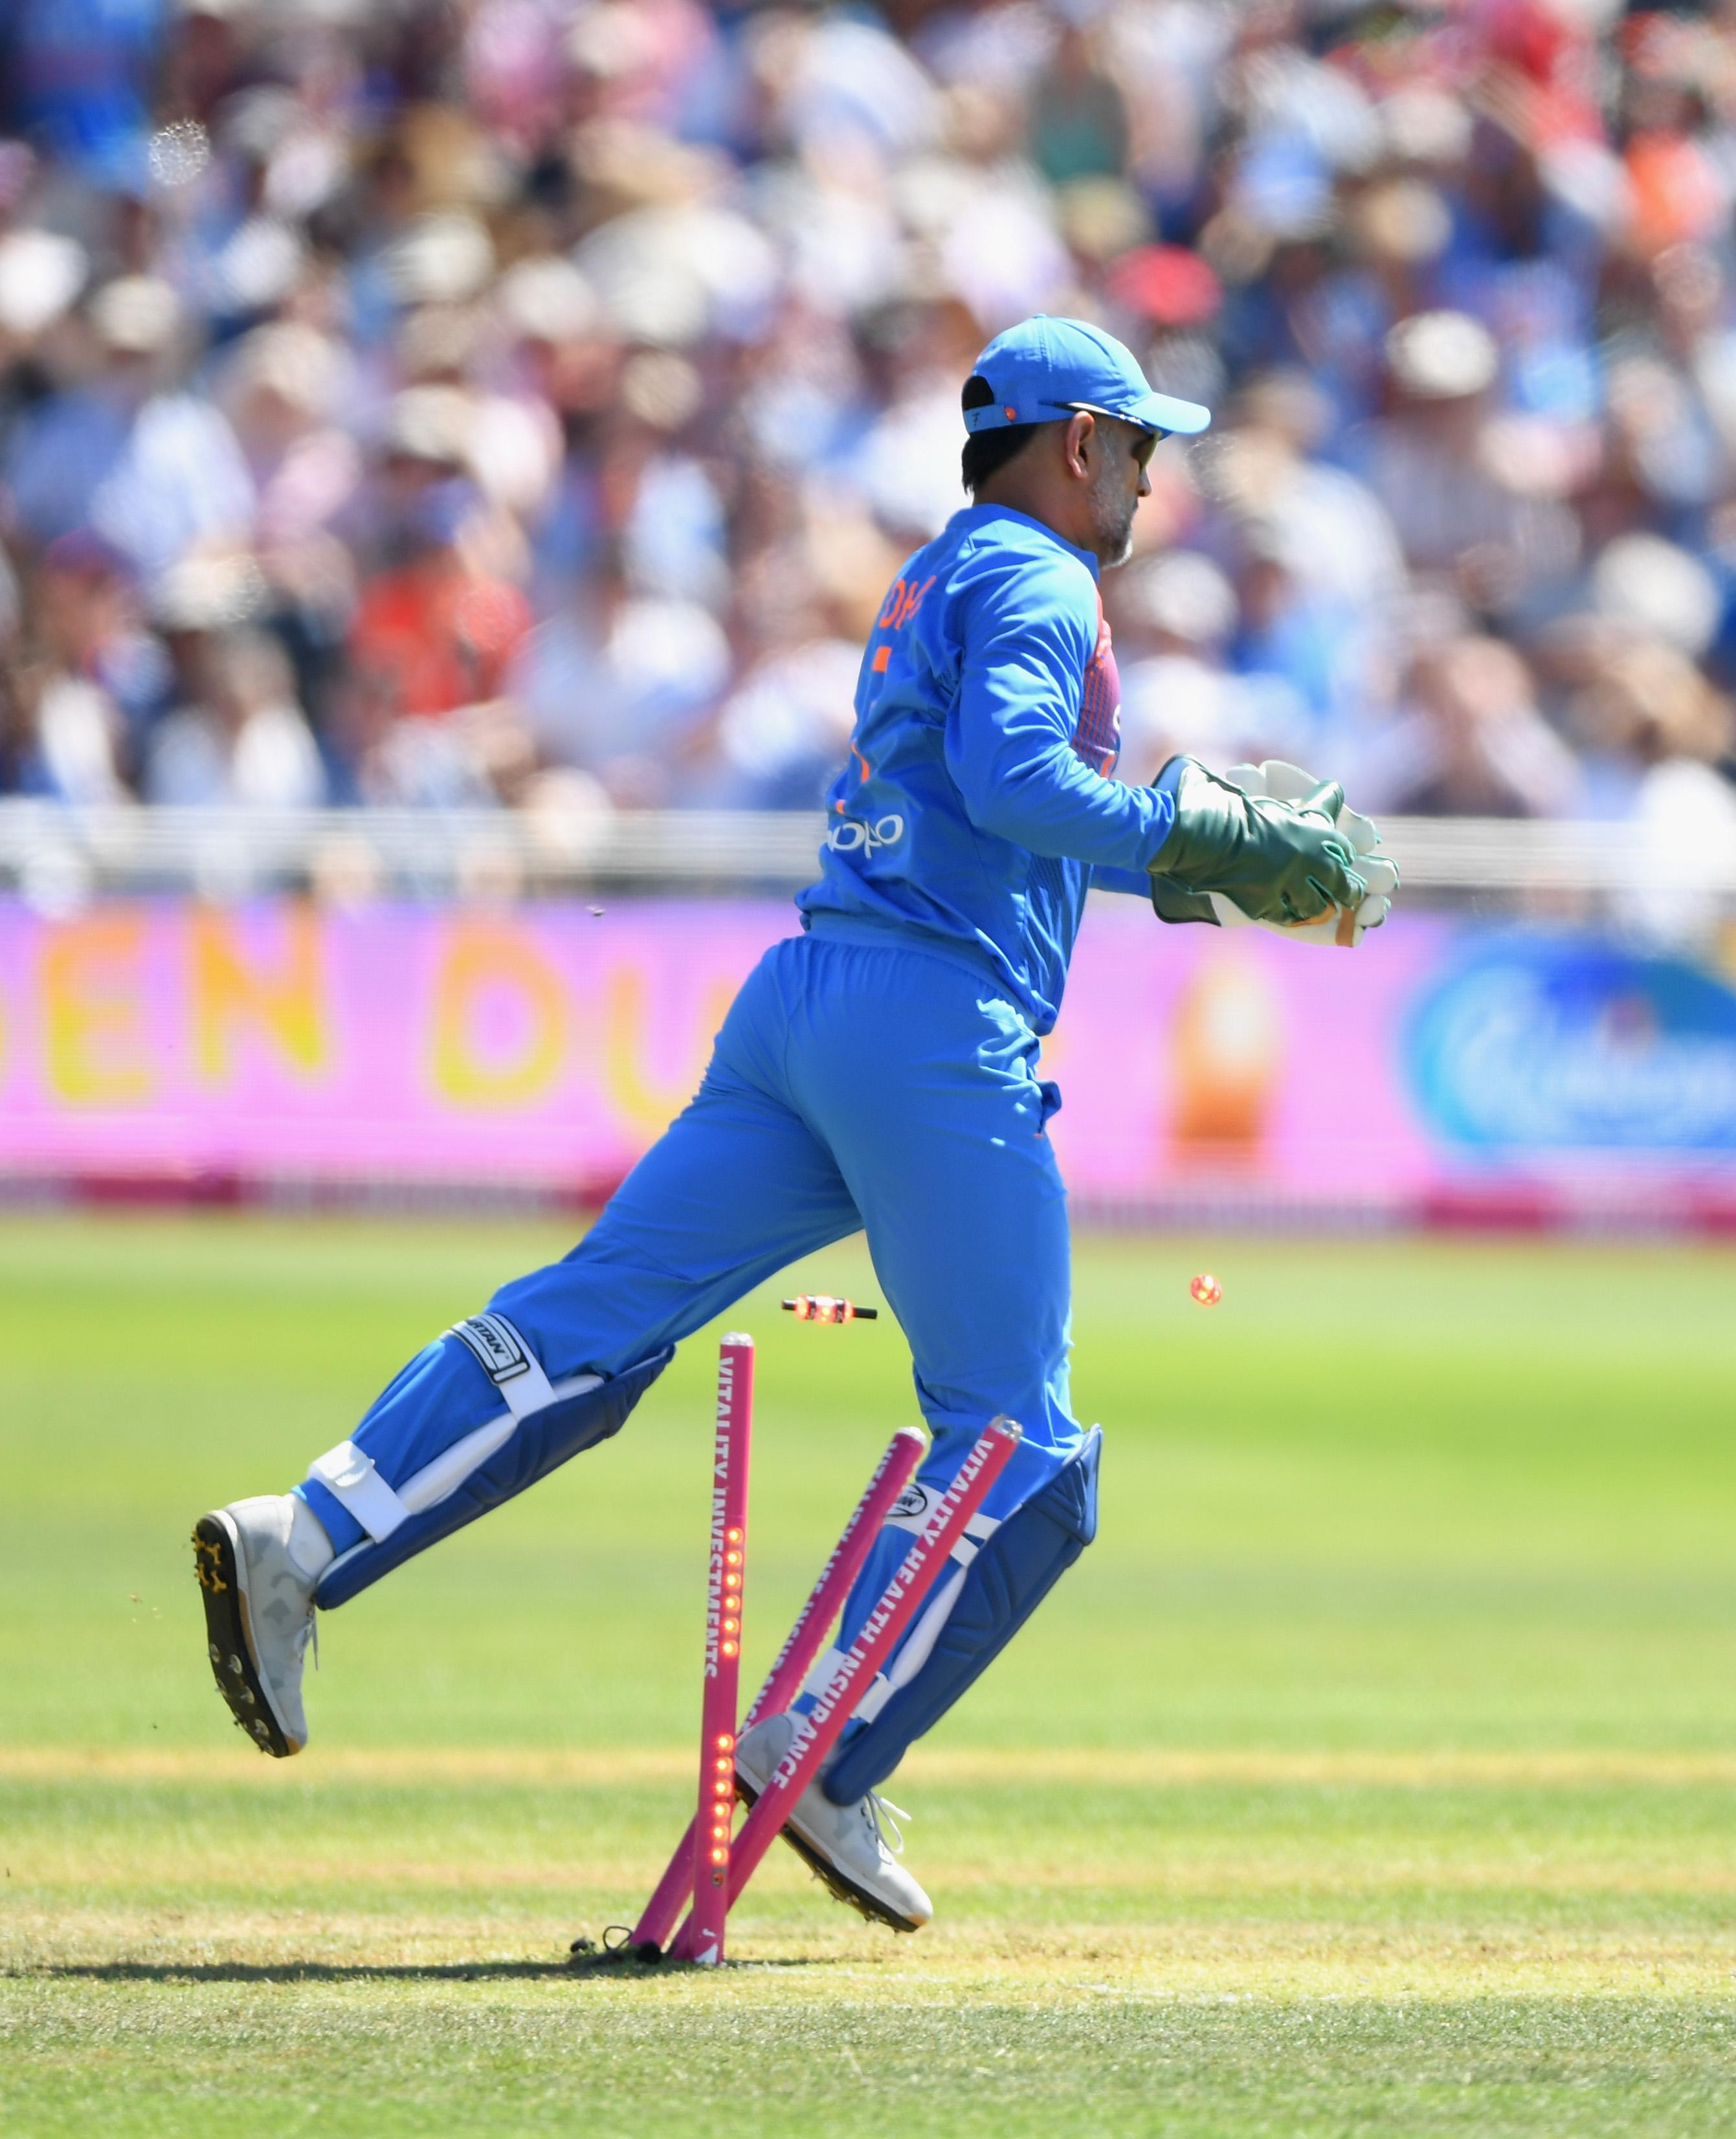 MS Dhoni collides with the stumps after taking a catch to dismiss Eoin Morgan